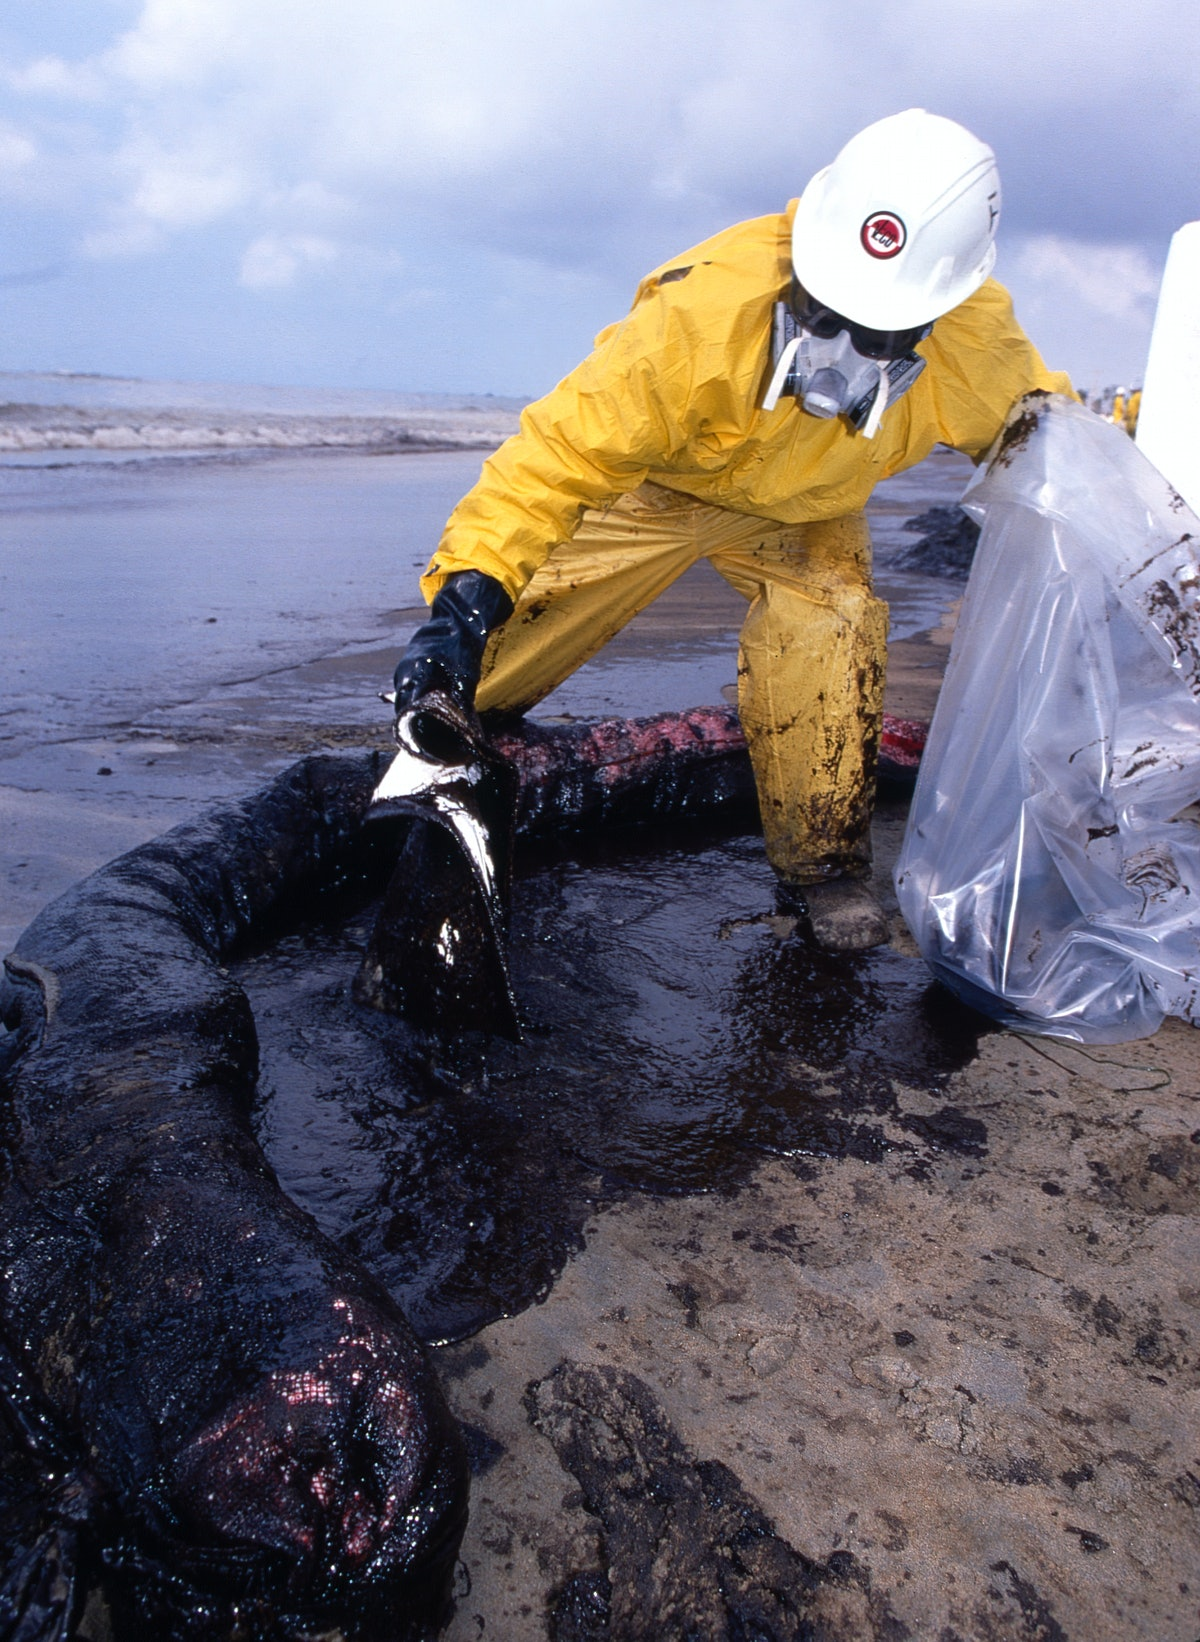 Trained HazMat workers clean up miles oil-drench sand after an off-shore oil spill occurred, Februa...